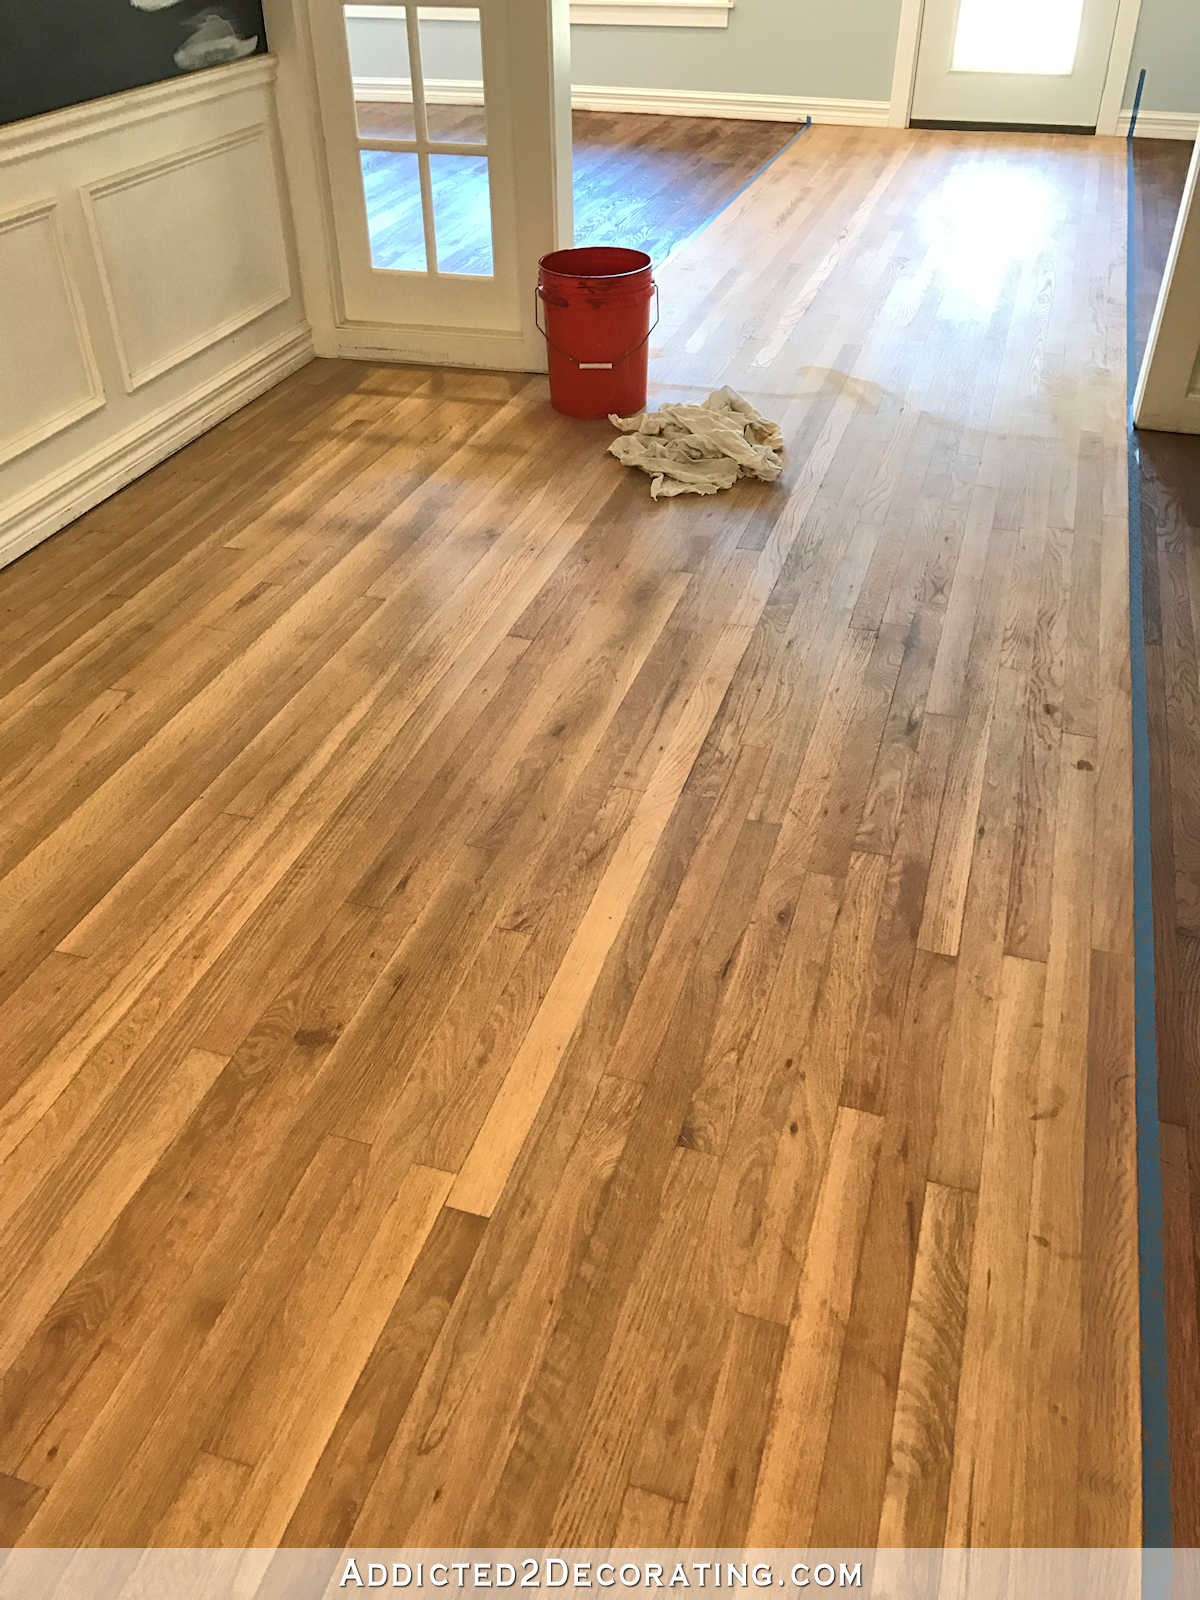 20 Popular How to Refurbish Hardwood Floors Yourself 2021 free download how to refurbish hardwood floors yourself of adventures in staining my red oak hardwood floors products process with staining red oak hardwood floors 8 entryway and music room wood condition